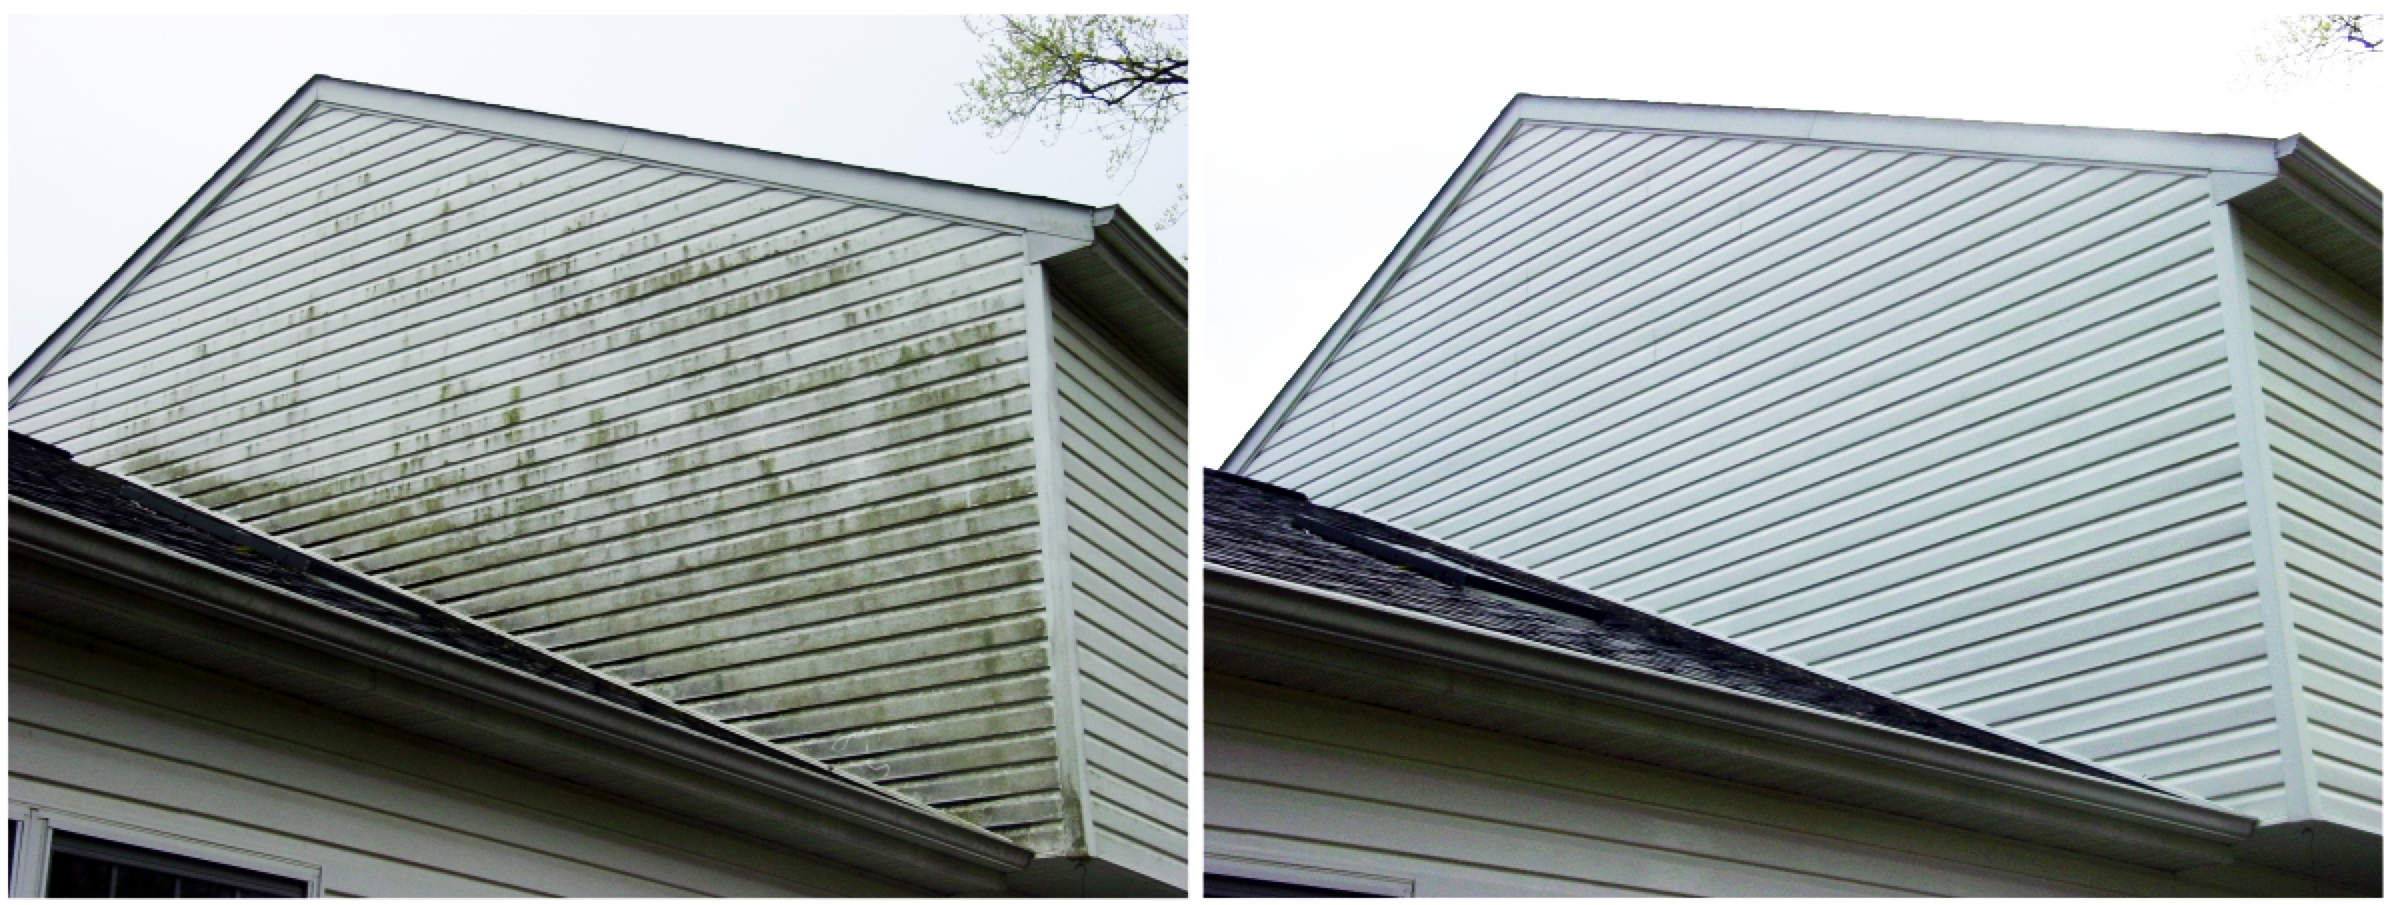 House-Wash-Siding-07.png